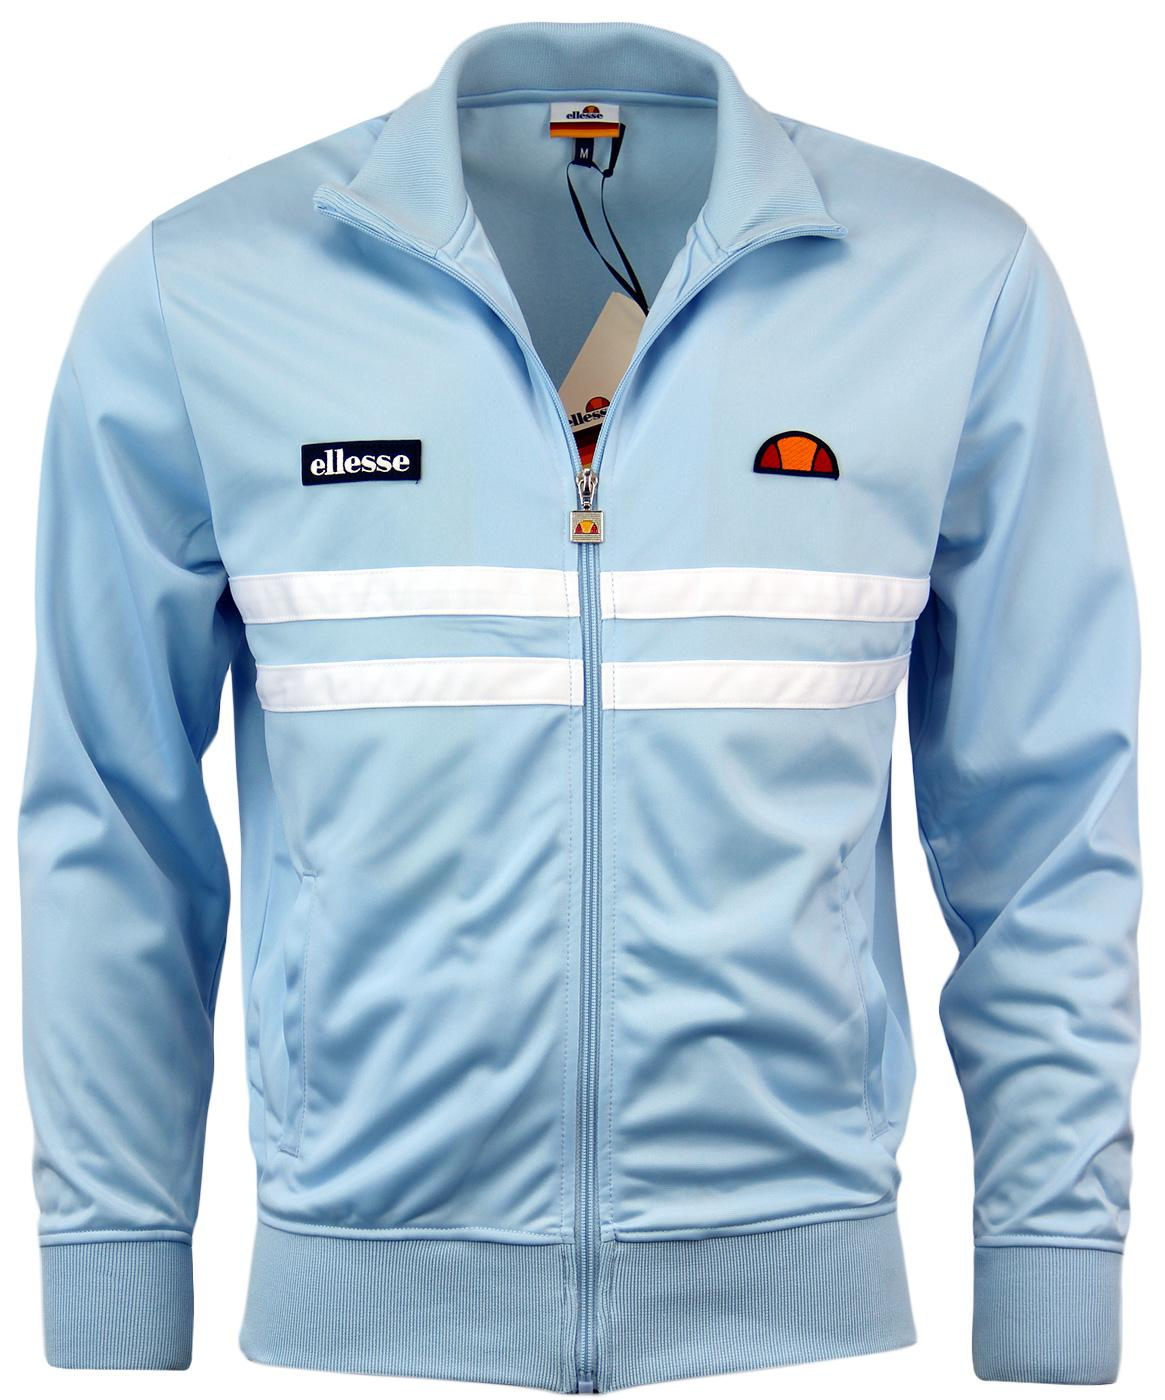 Vicenza 2 ELLESSE Retro 80s Twin Stripe Track Top